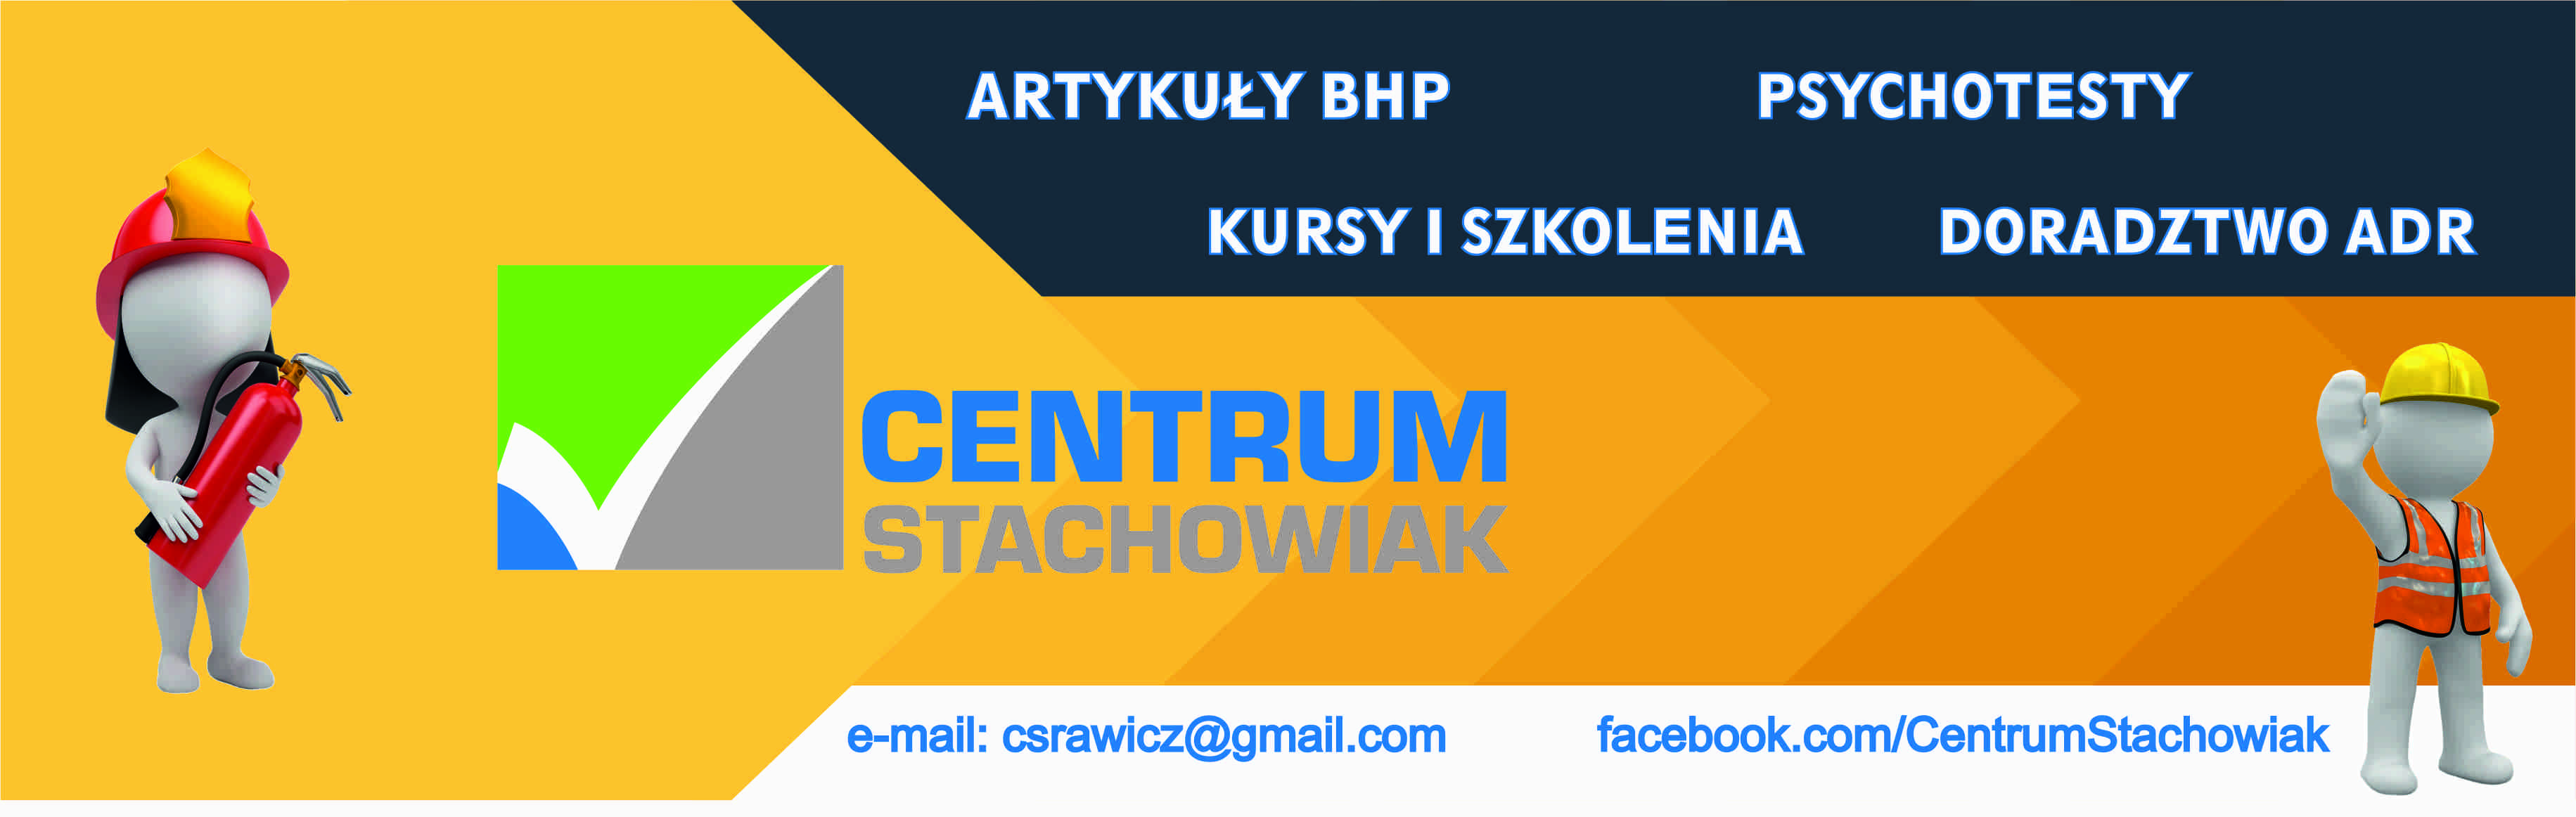 CENTRUM STACHOWIAK